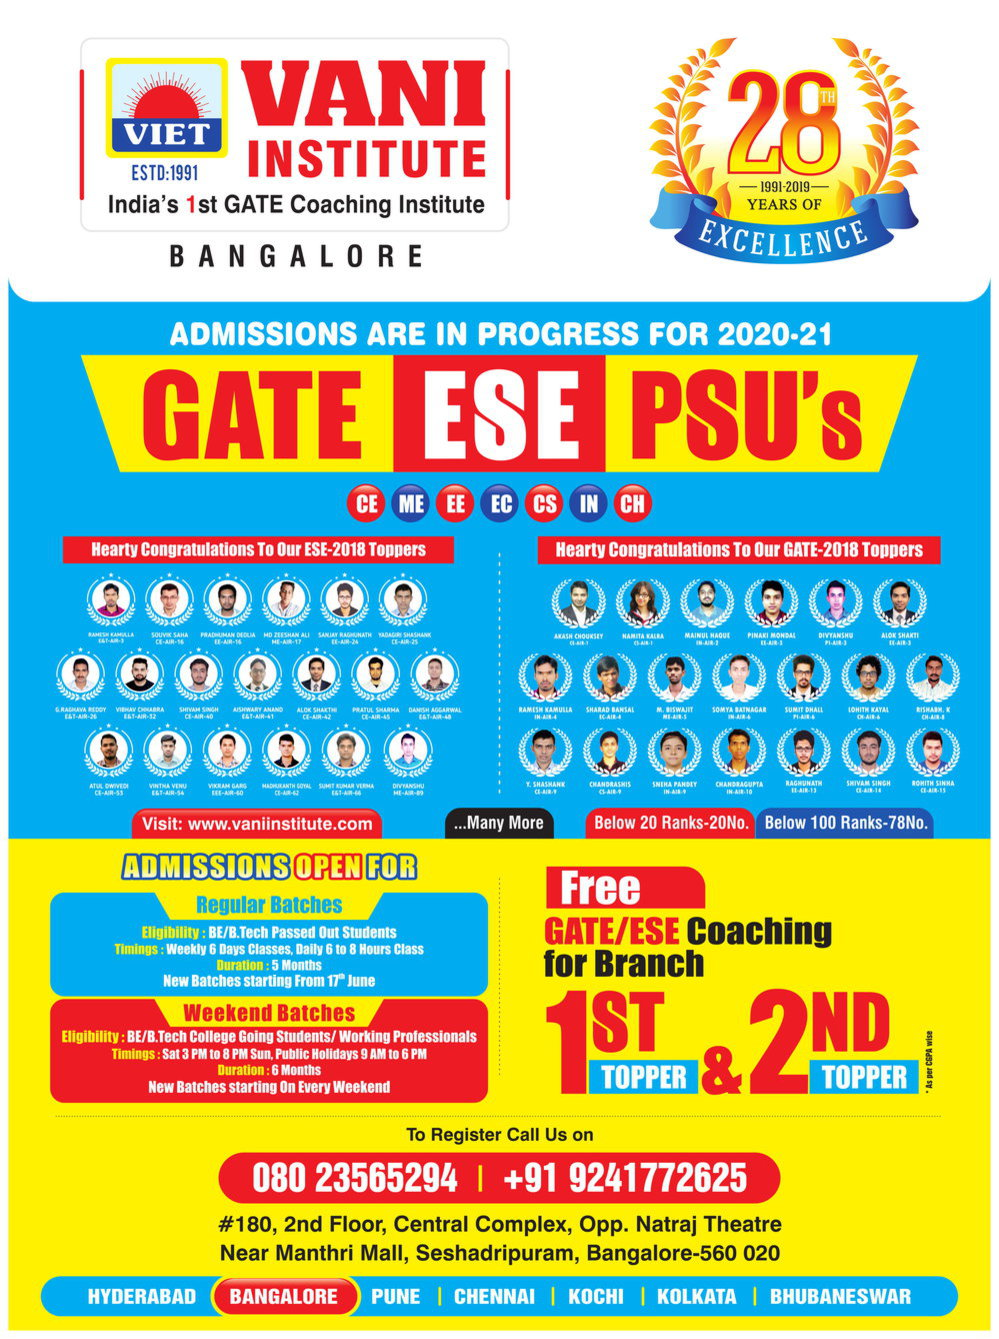 VANI INSTITUTE BANGALORE--- GATE COACHING IN BANGALORE cover